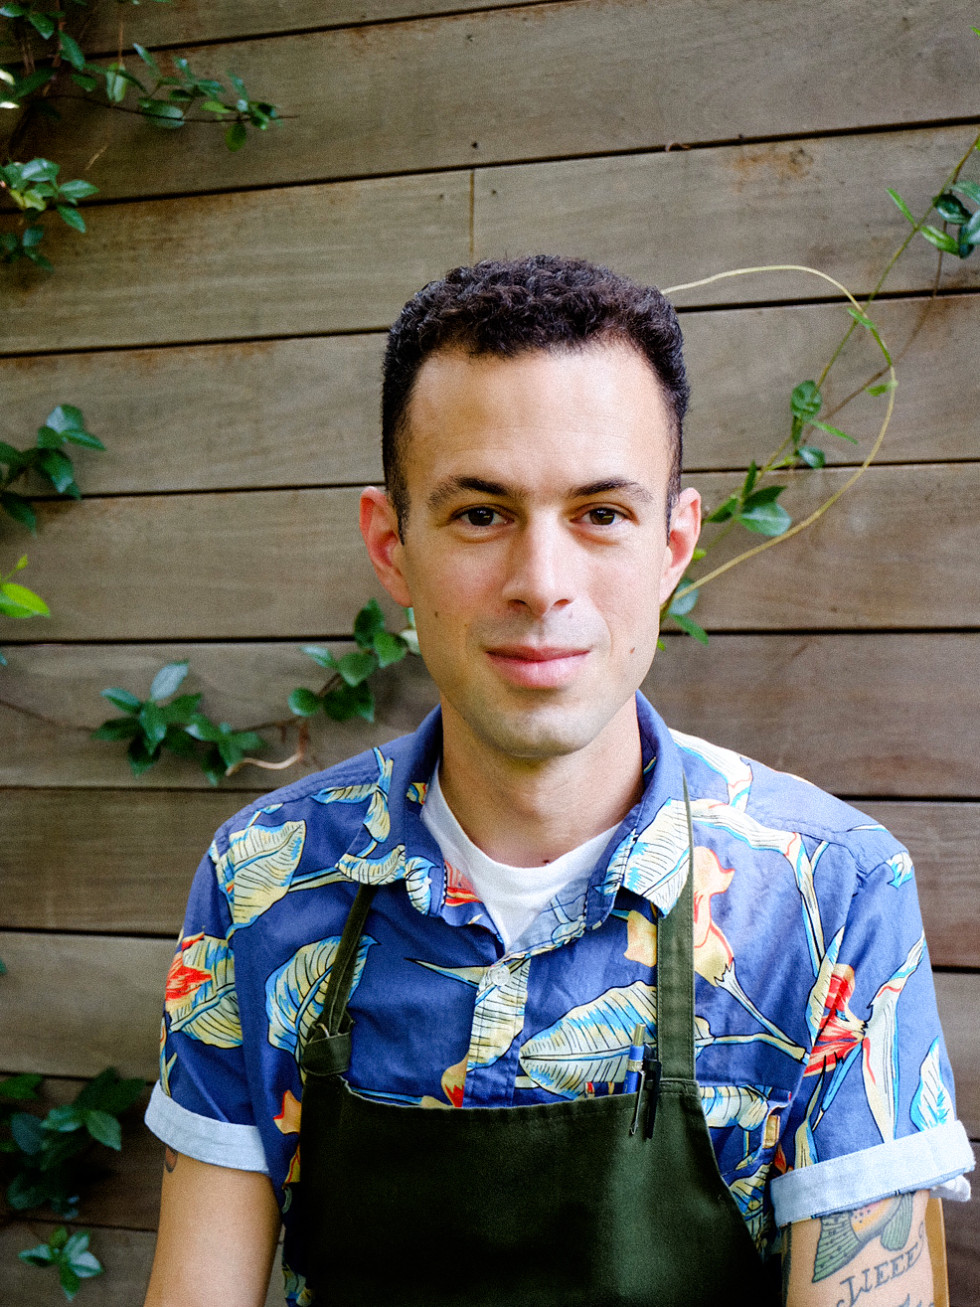 Andrew Asaff of Carpenters Hall in Austin